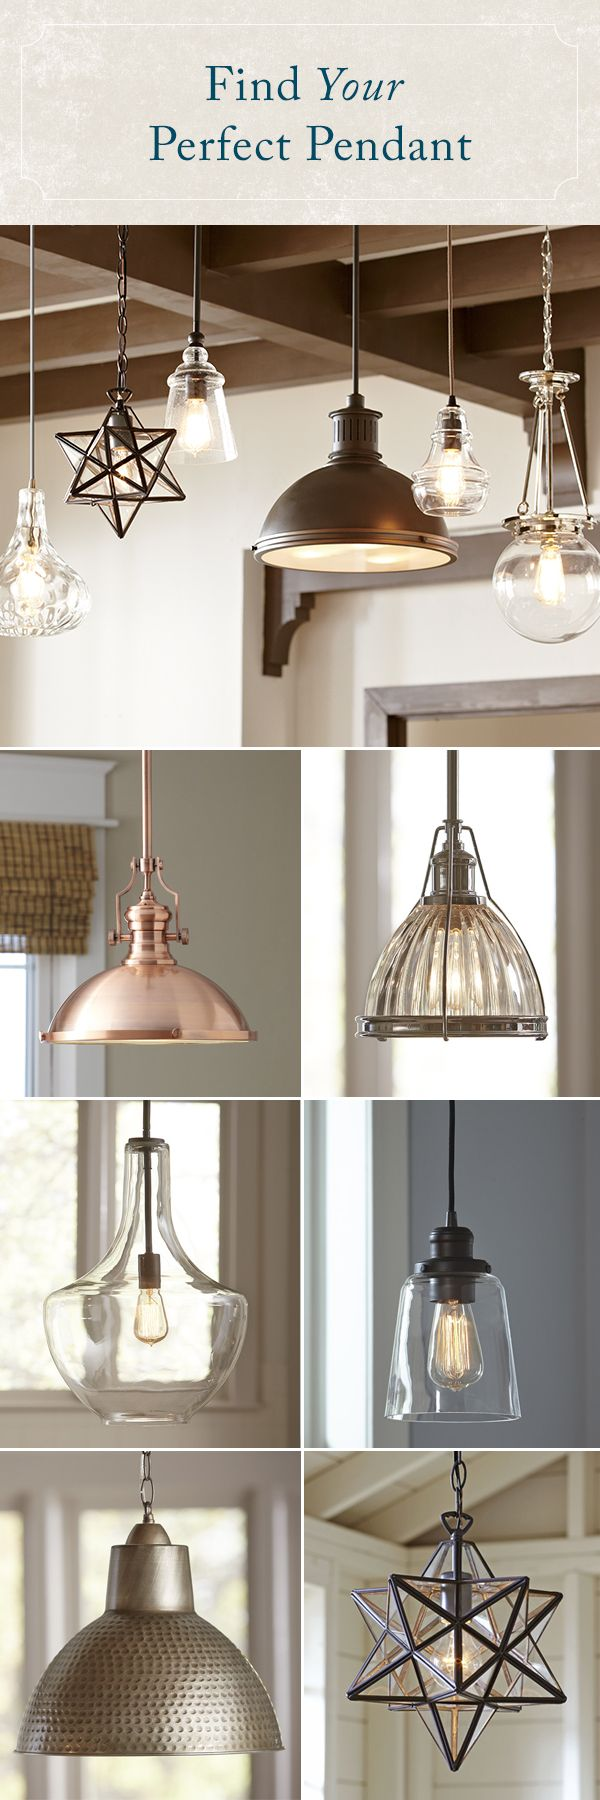 Whether you're looking for a statement piece or simply want to brighten up your space, a pendant will shine a new light on your look. Featuring styles that mix traditional influences with modern-day silhouettes and finishes, Birch Lane's selection of pendant lighting has an option for everyone. Best of all, every order over $49 Ships Free!